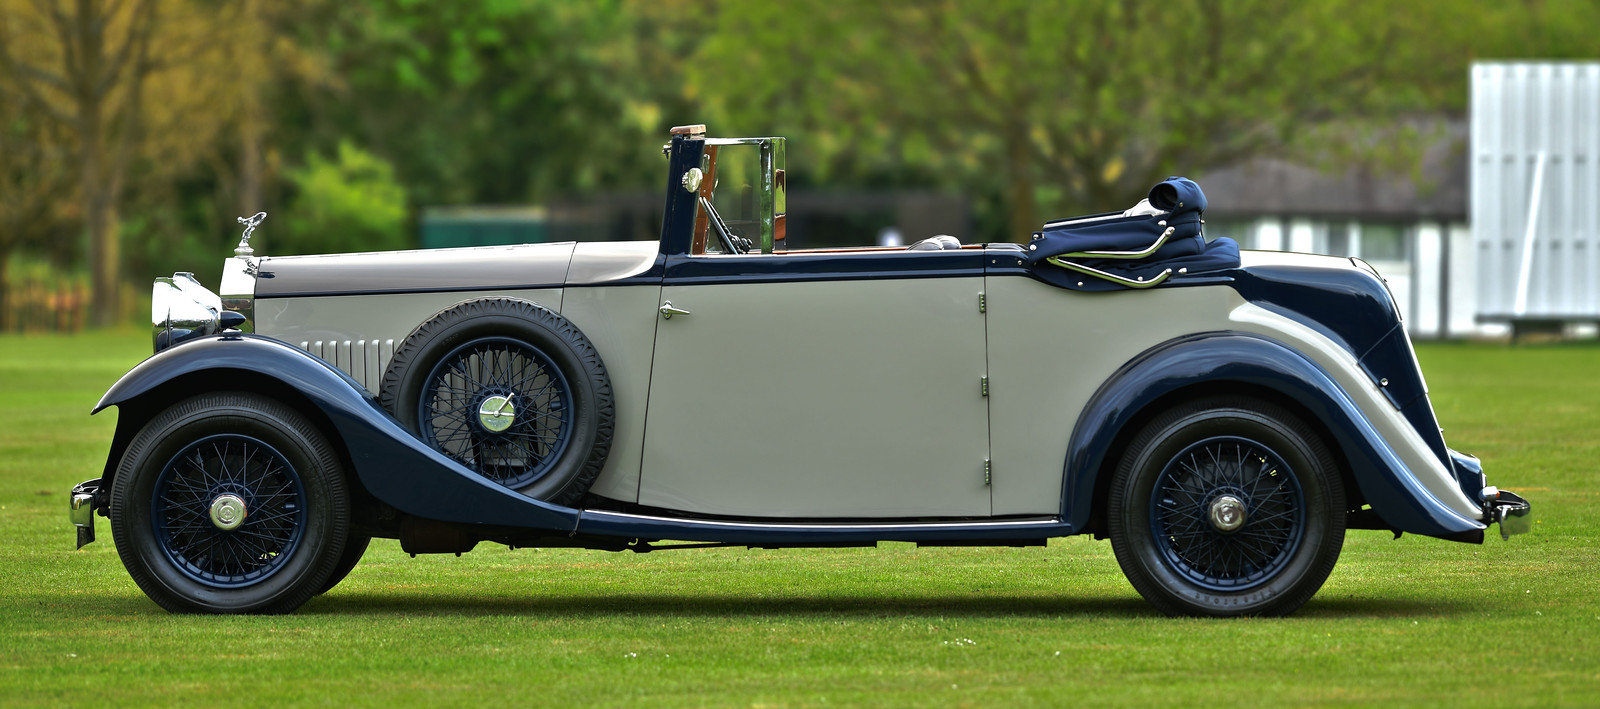 1934 Rolls Royce 20/25 Three position drophead Coupe For Sale (picture 2 of 6)